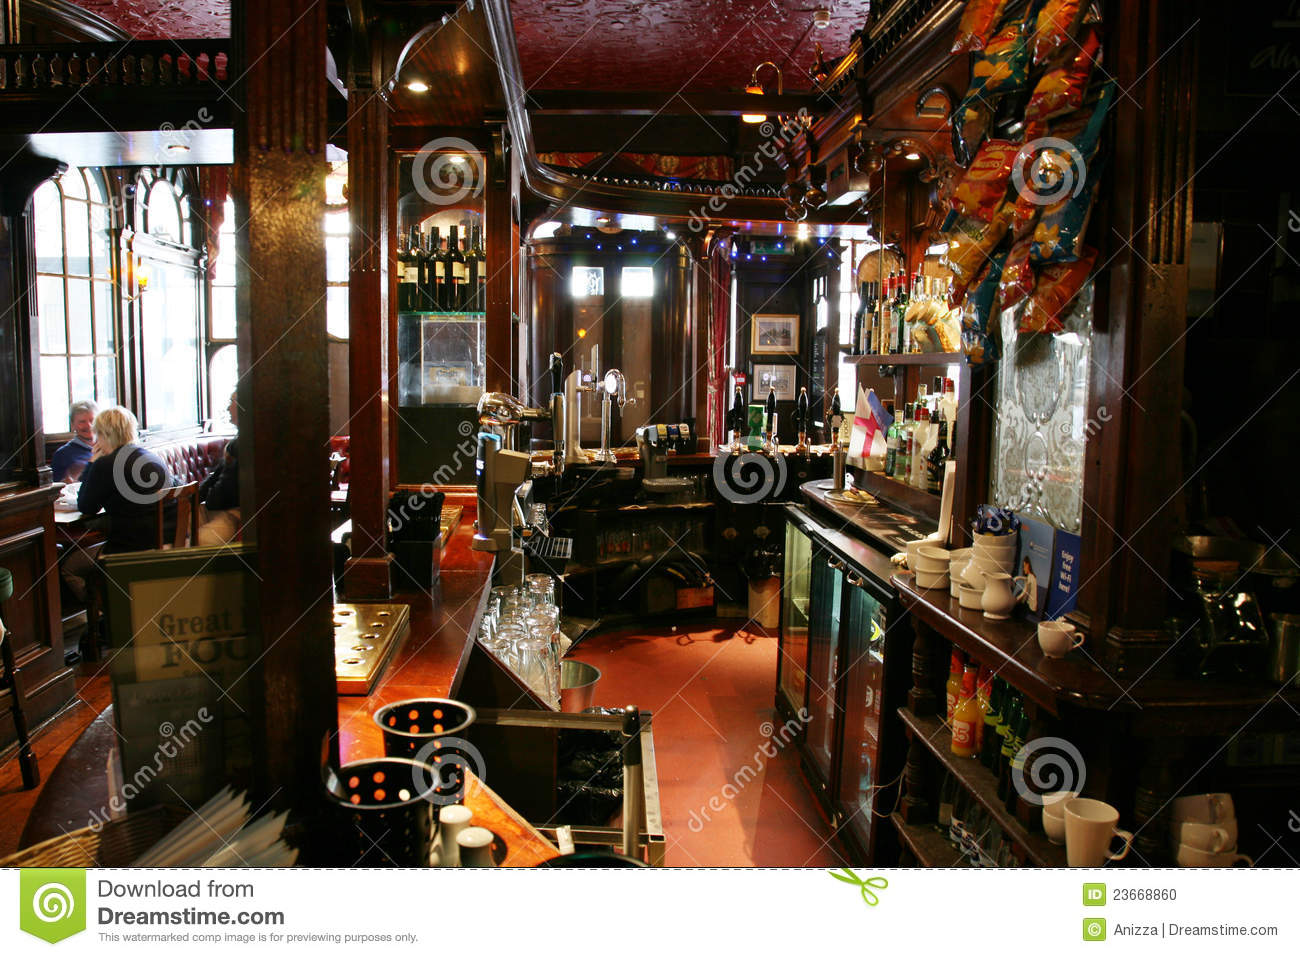 London  UK   August 30  2010  Inside view of a public house  known as